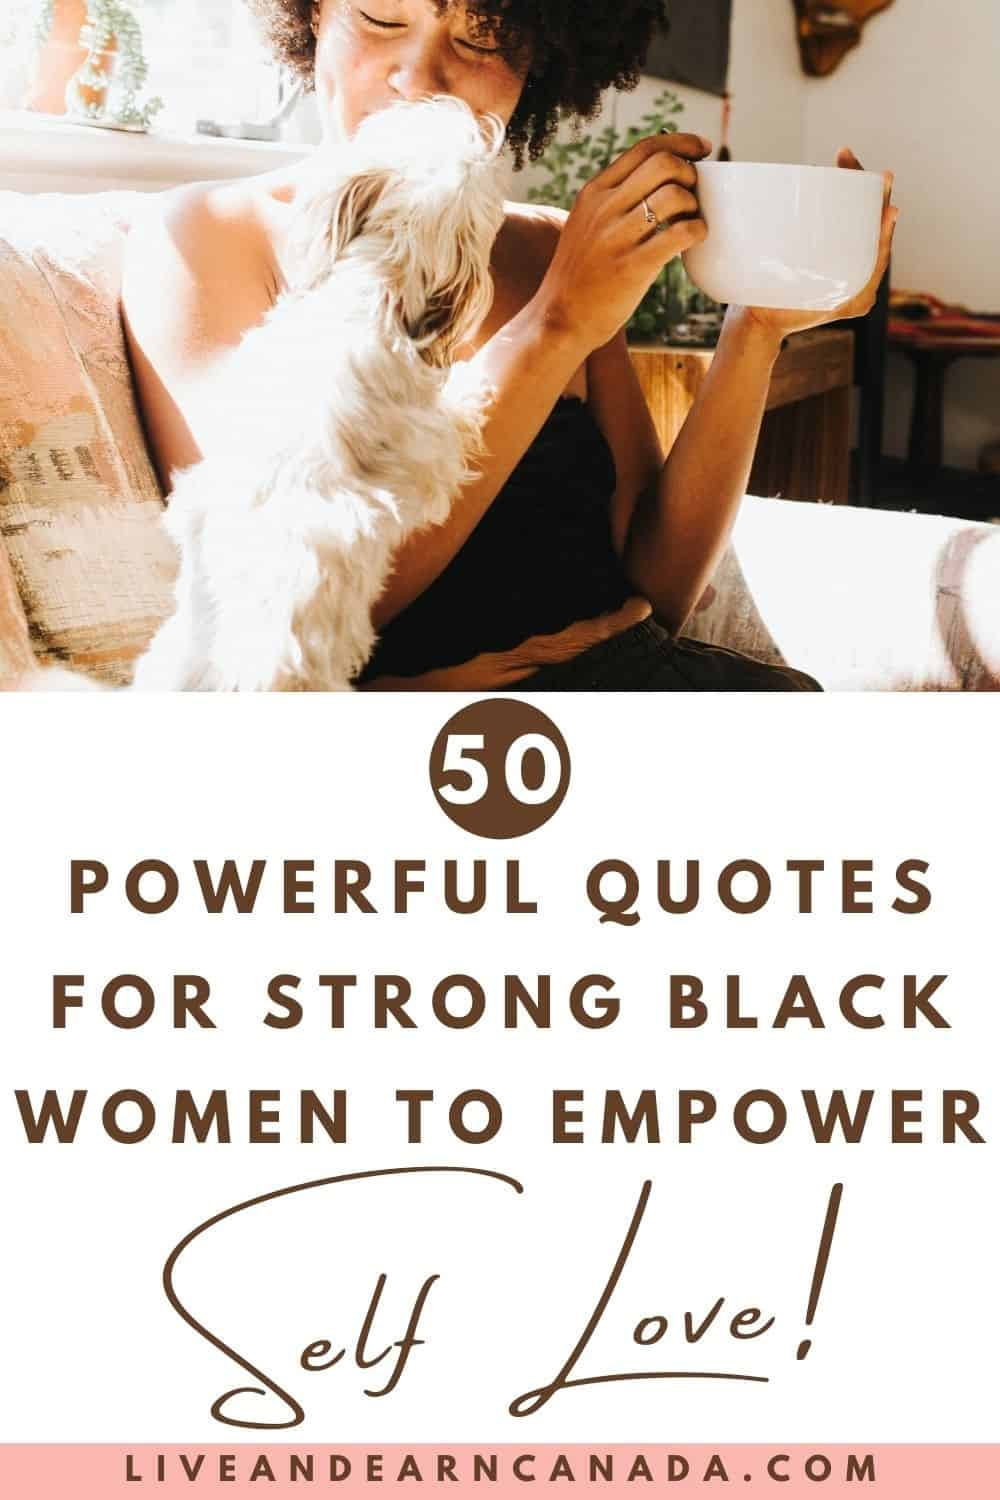 50 Powerful Quotes from Inspiring Black Women! These are inspirational, motivational, wise, and funny black women quotes, sayings, and proverbs that inspire us.